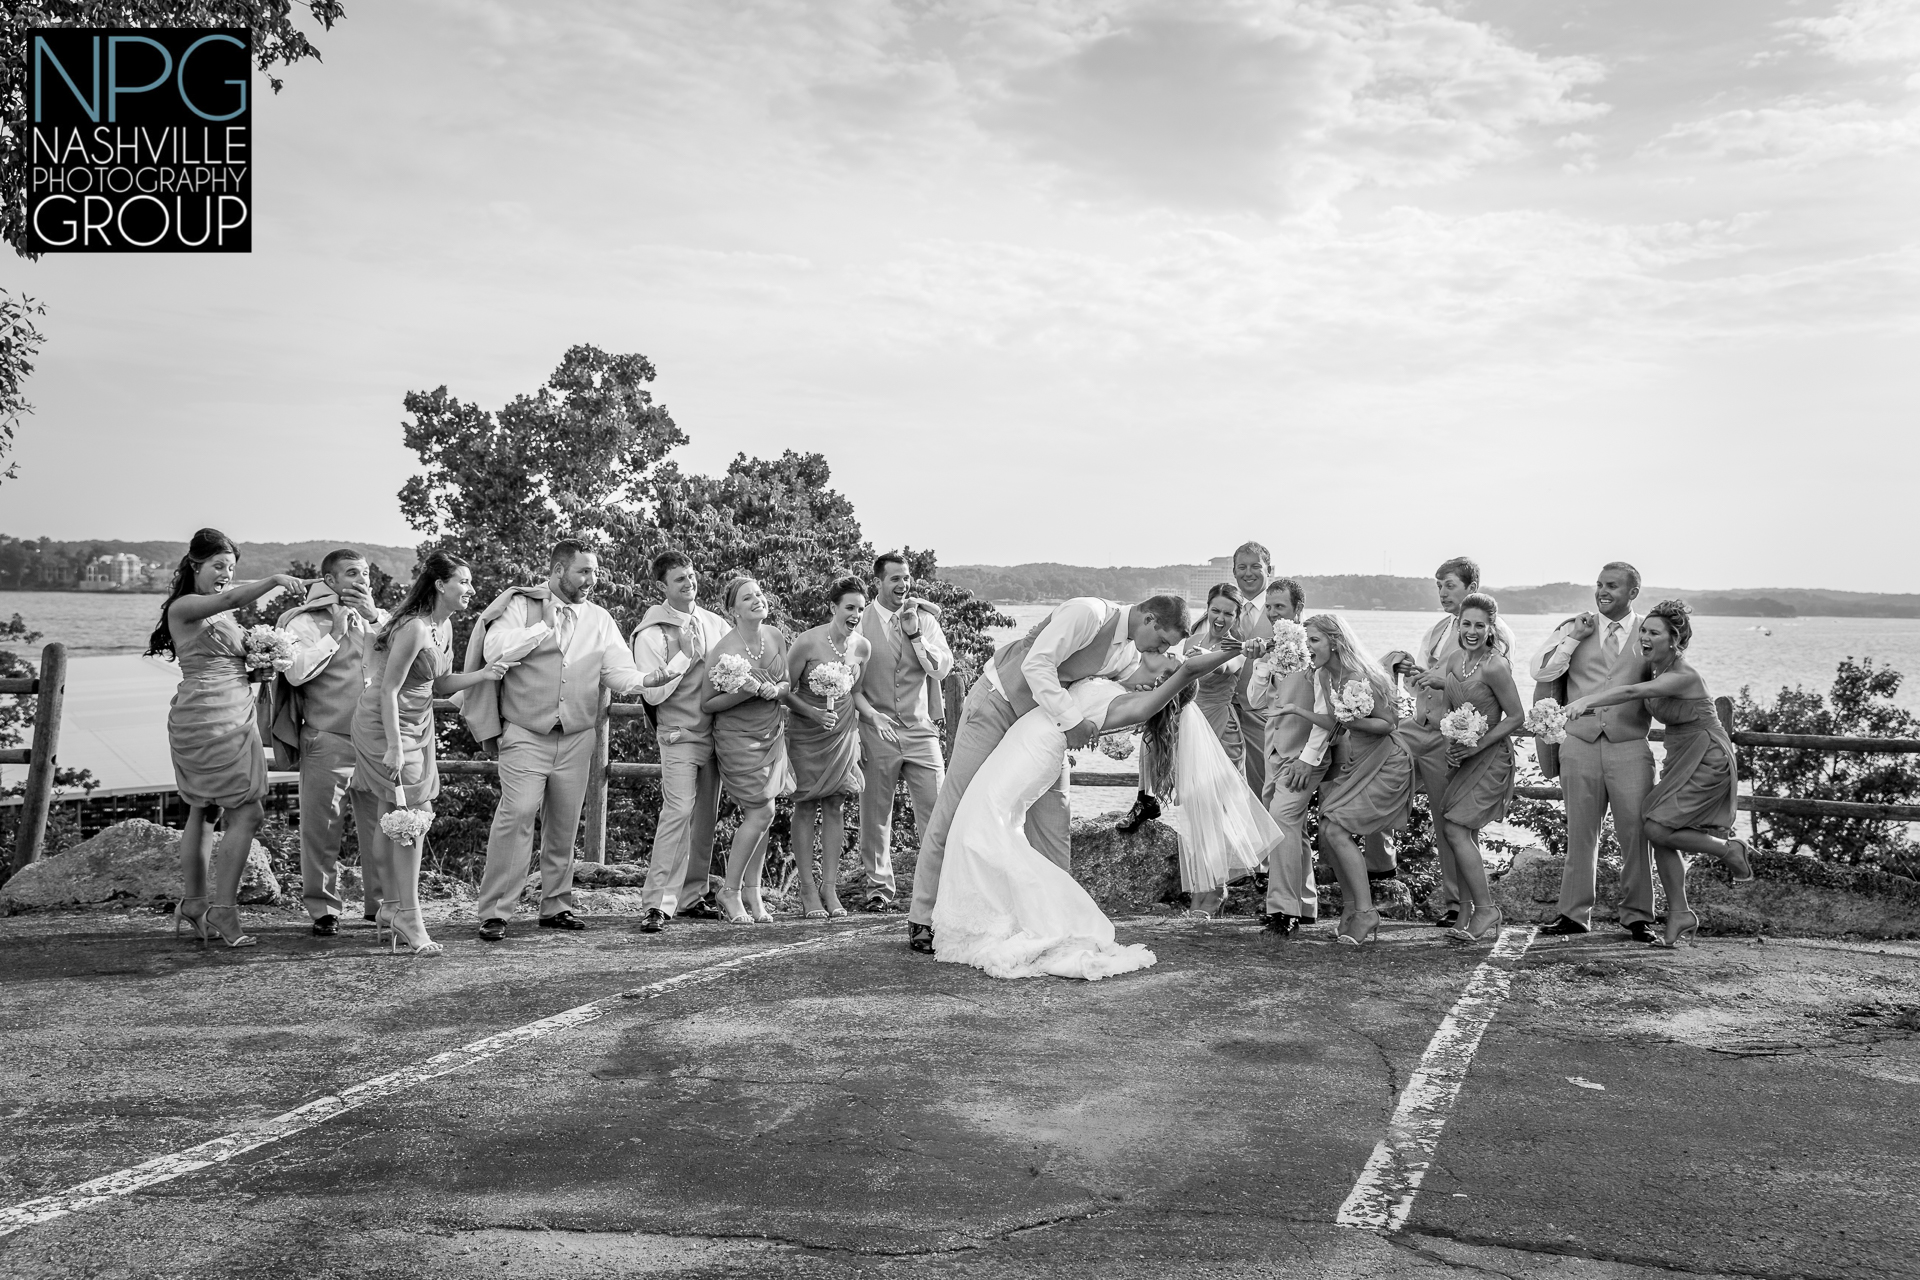 Nashville Photography Group wedding photographers-13-2.jpg